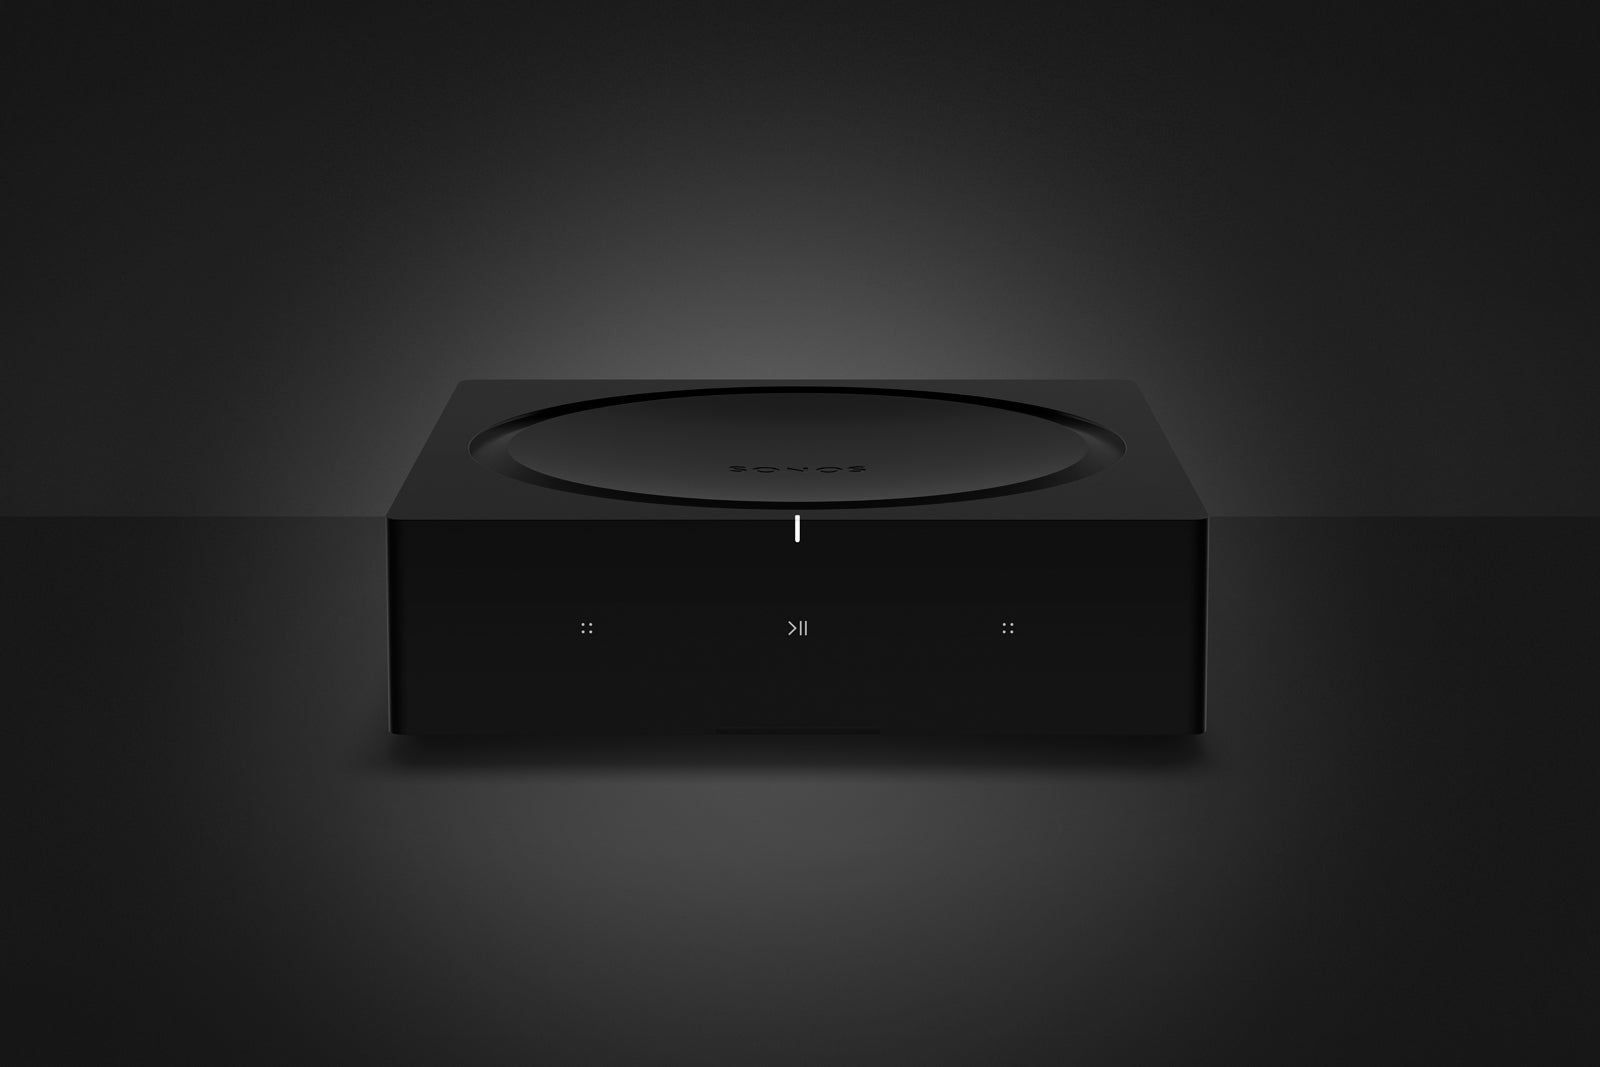 Sonos Amp Is The Most Important New Product Company Has Launched Signal Amplifiers Can Set Input And Output Ratio In Years Techhive